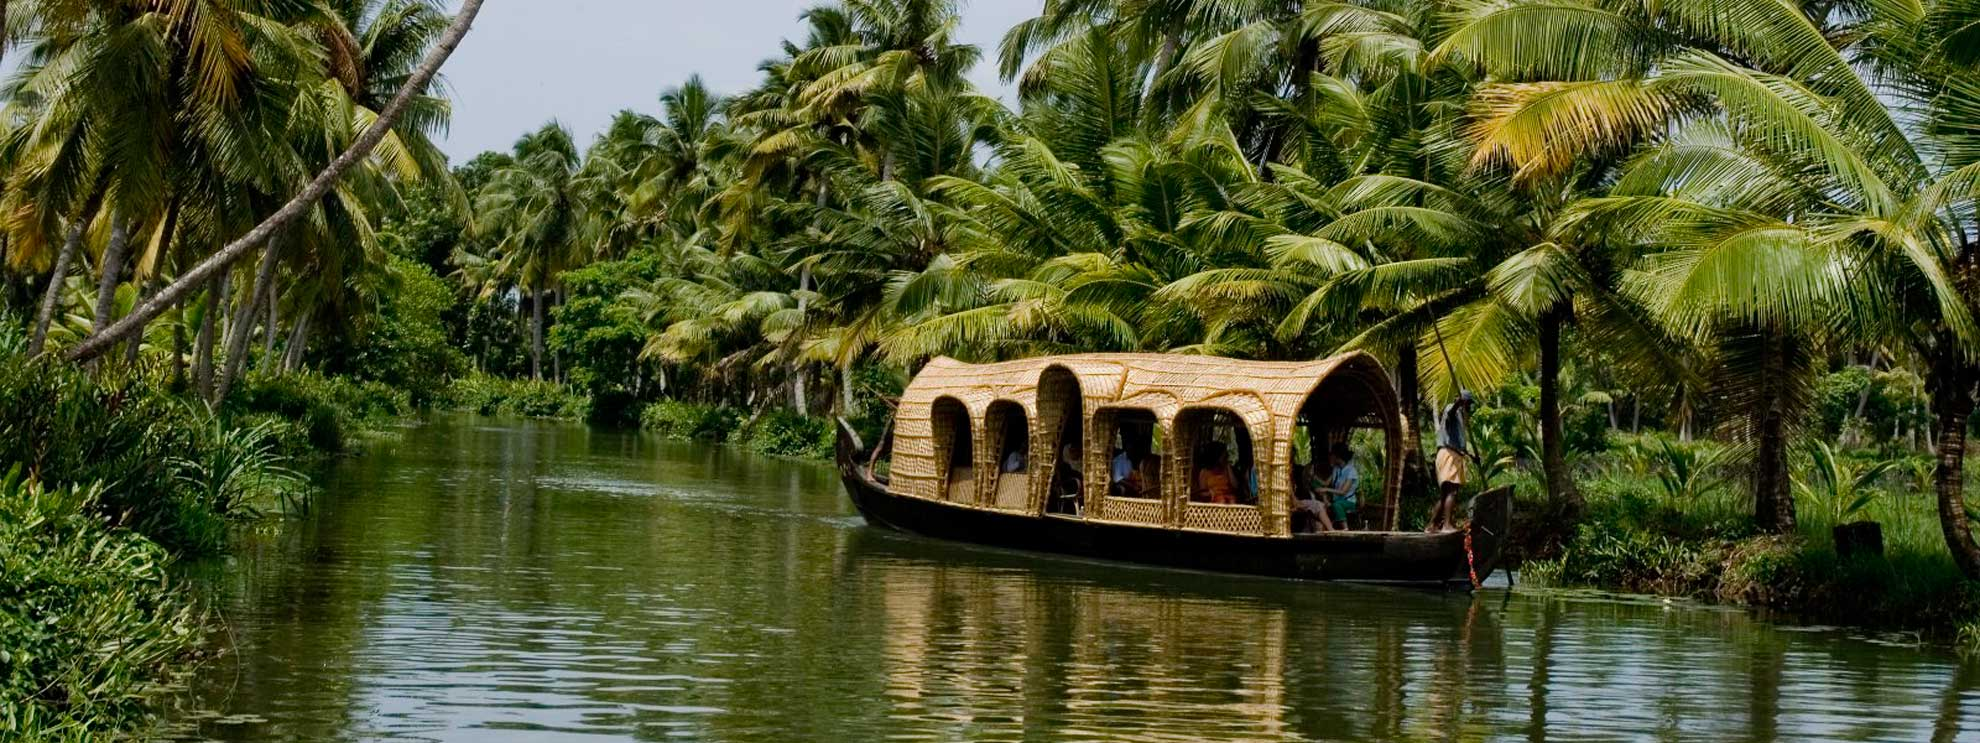 Top 10 places to visit in kerala god s own country for Best places to go to vacation